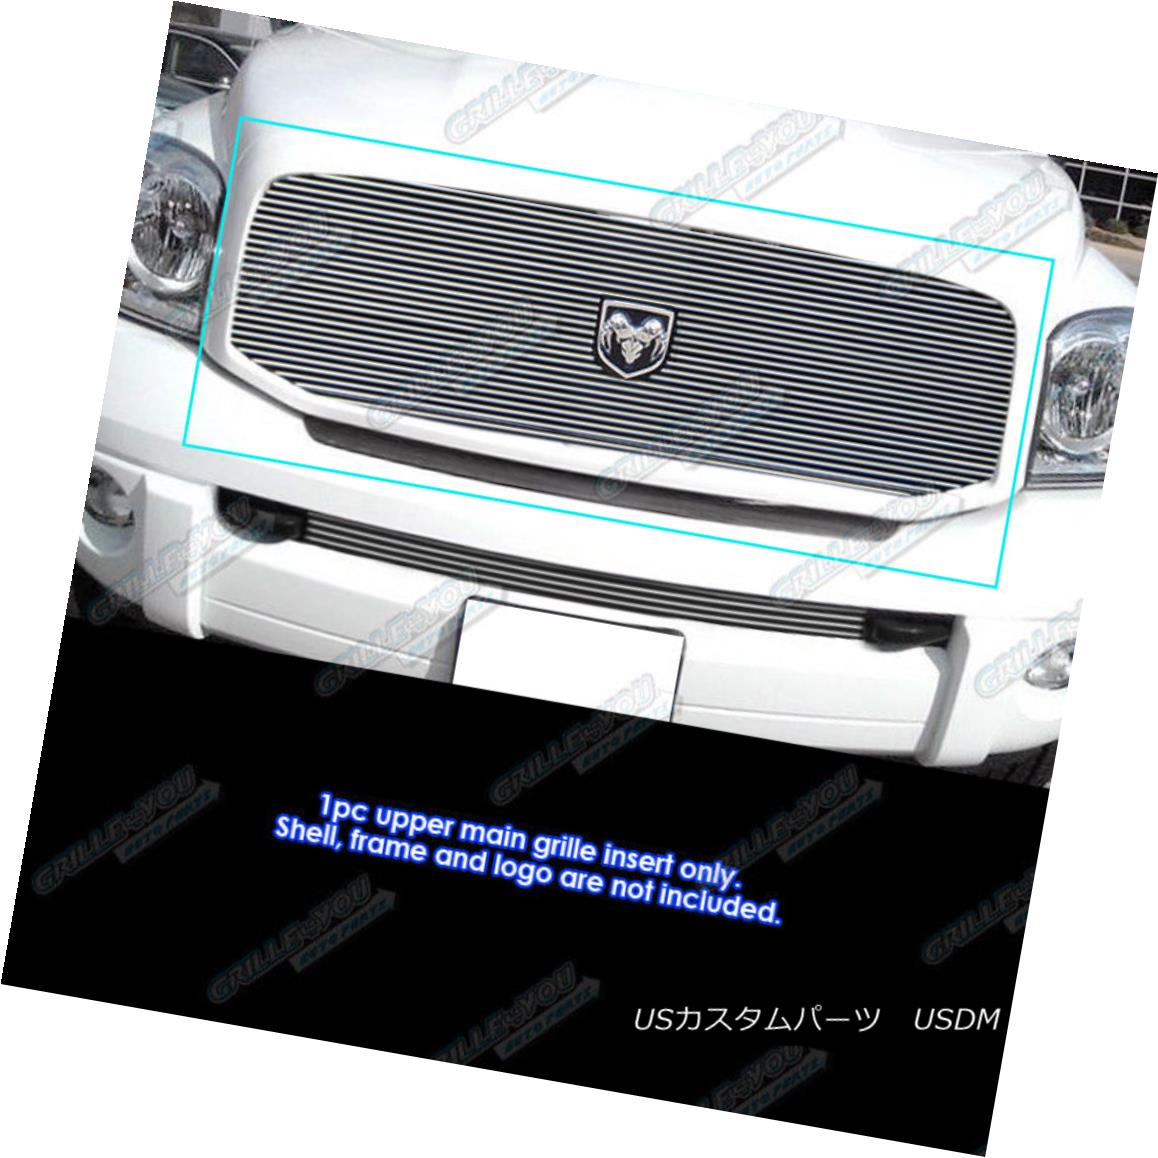 グリル Fits 2006-2008 Dodge Ram Pickup Main Upper Billet Grille Insert 2006-2008 Dodge Ram Pickupメインアッパービレットグリルインサート